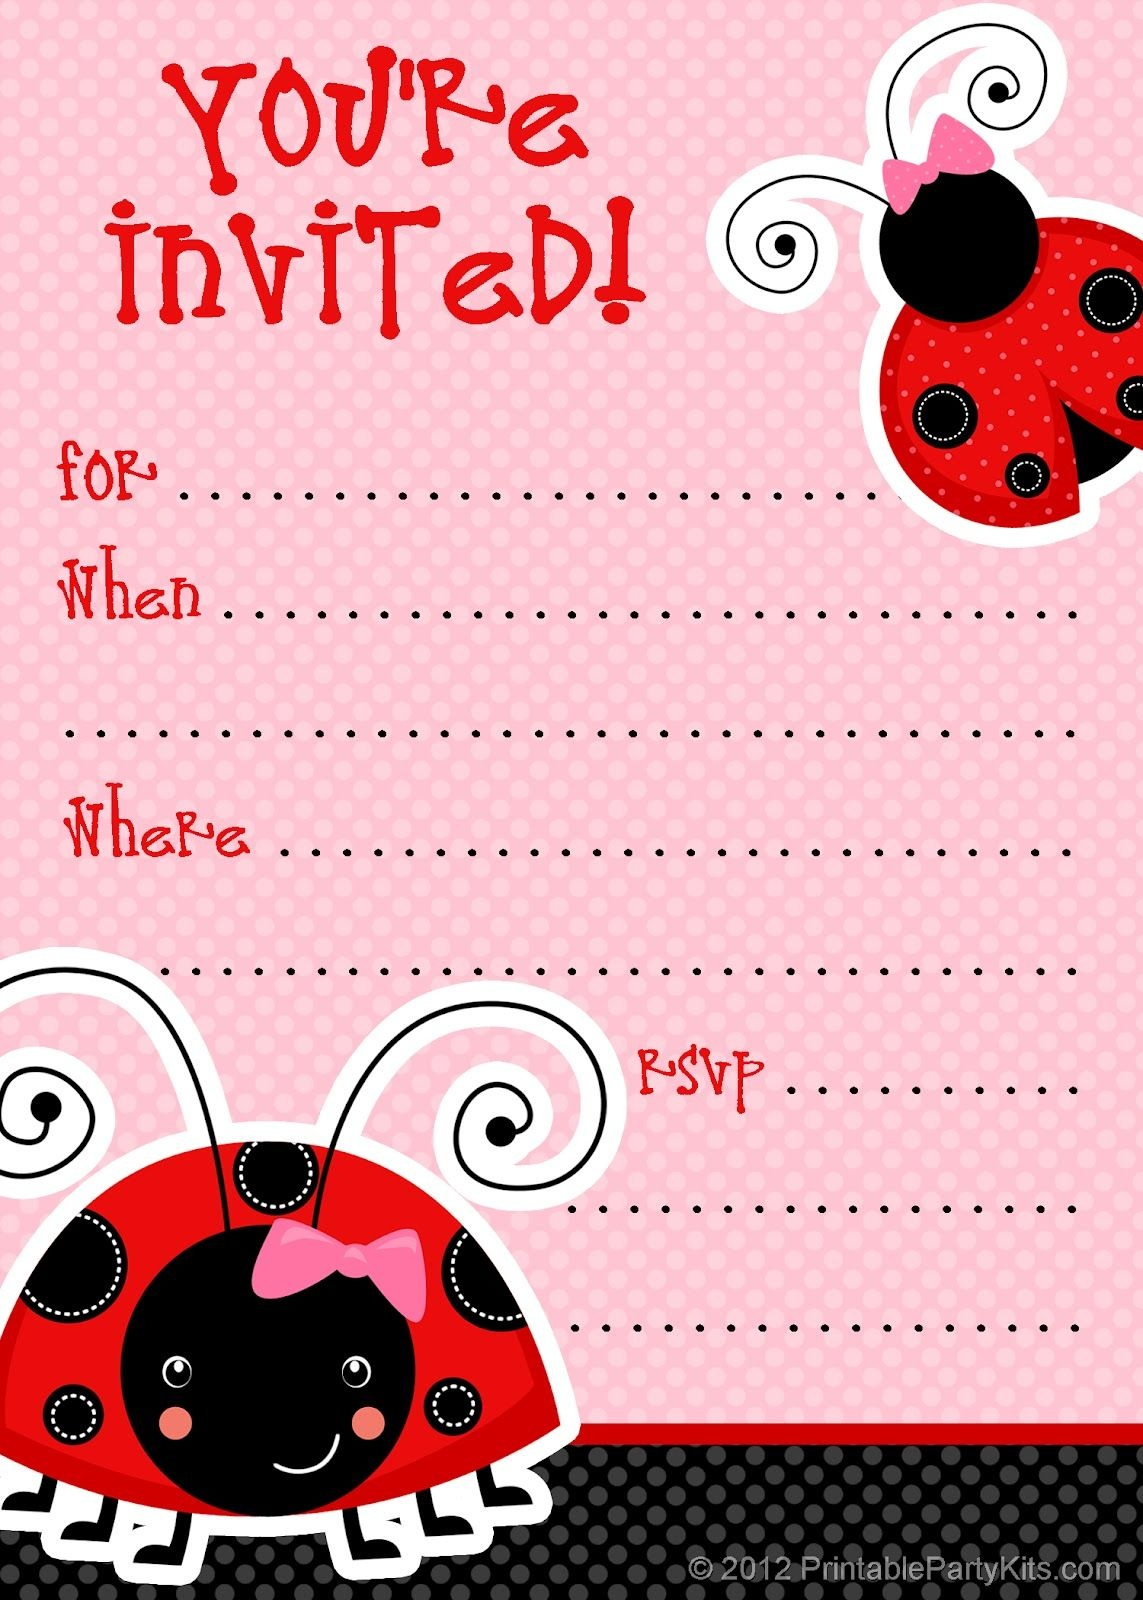 1) Free Printable Ladybug Invitation Blank Template. 2) Beautiful - Free Printable Ladybug Invitations